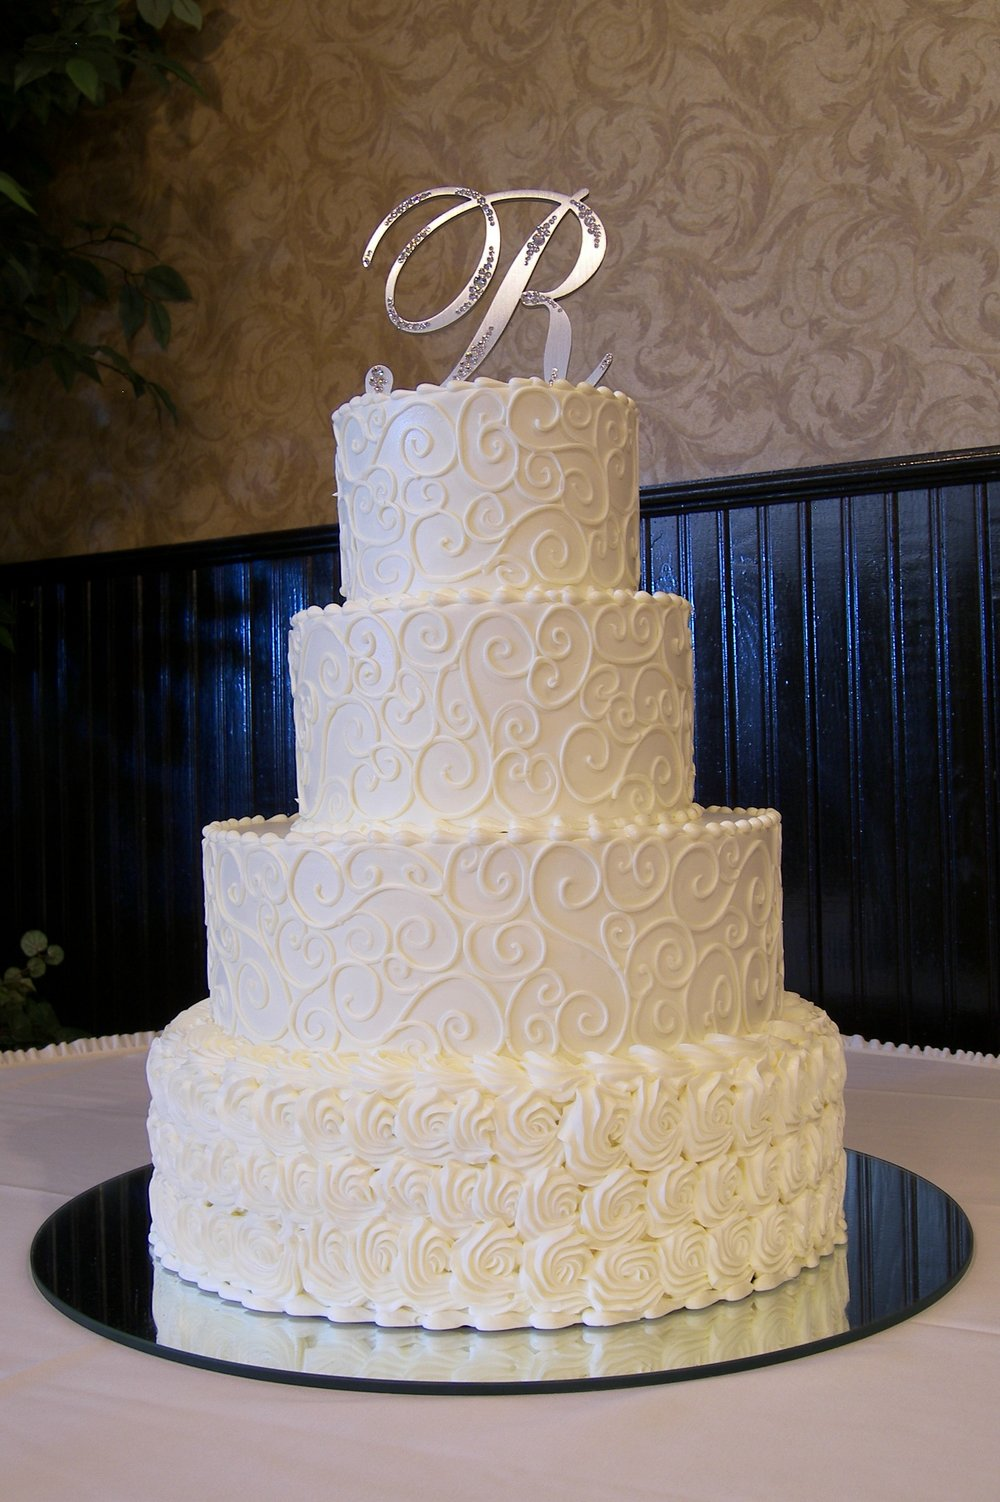 Buttercream - Our delicious buttercream cakes feature our decadent frosting between the cake layers and elegantly swirled and piped on the surface for classic, tasty designs.